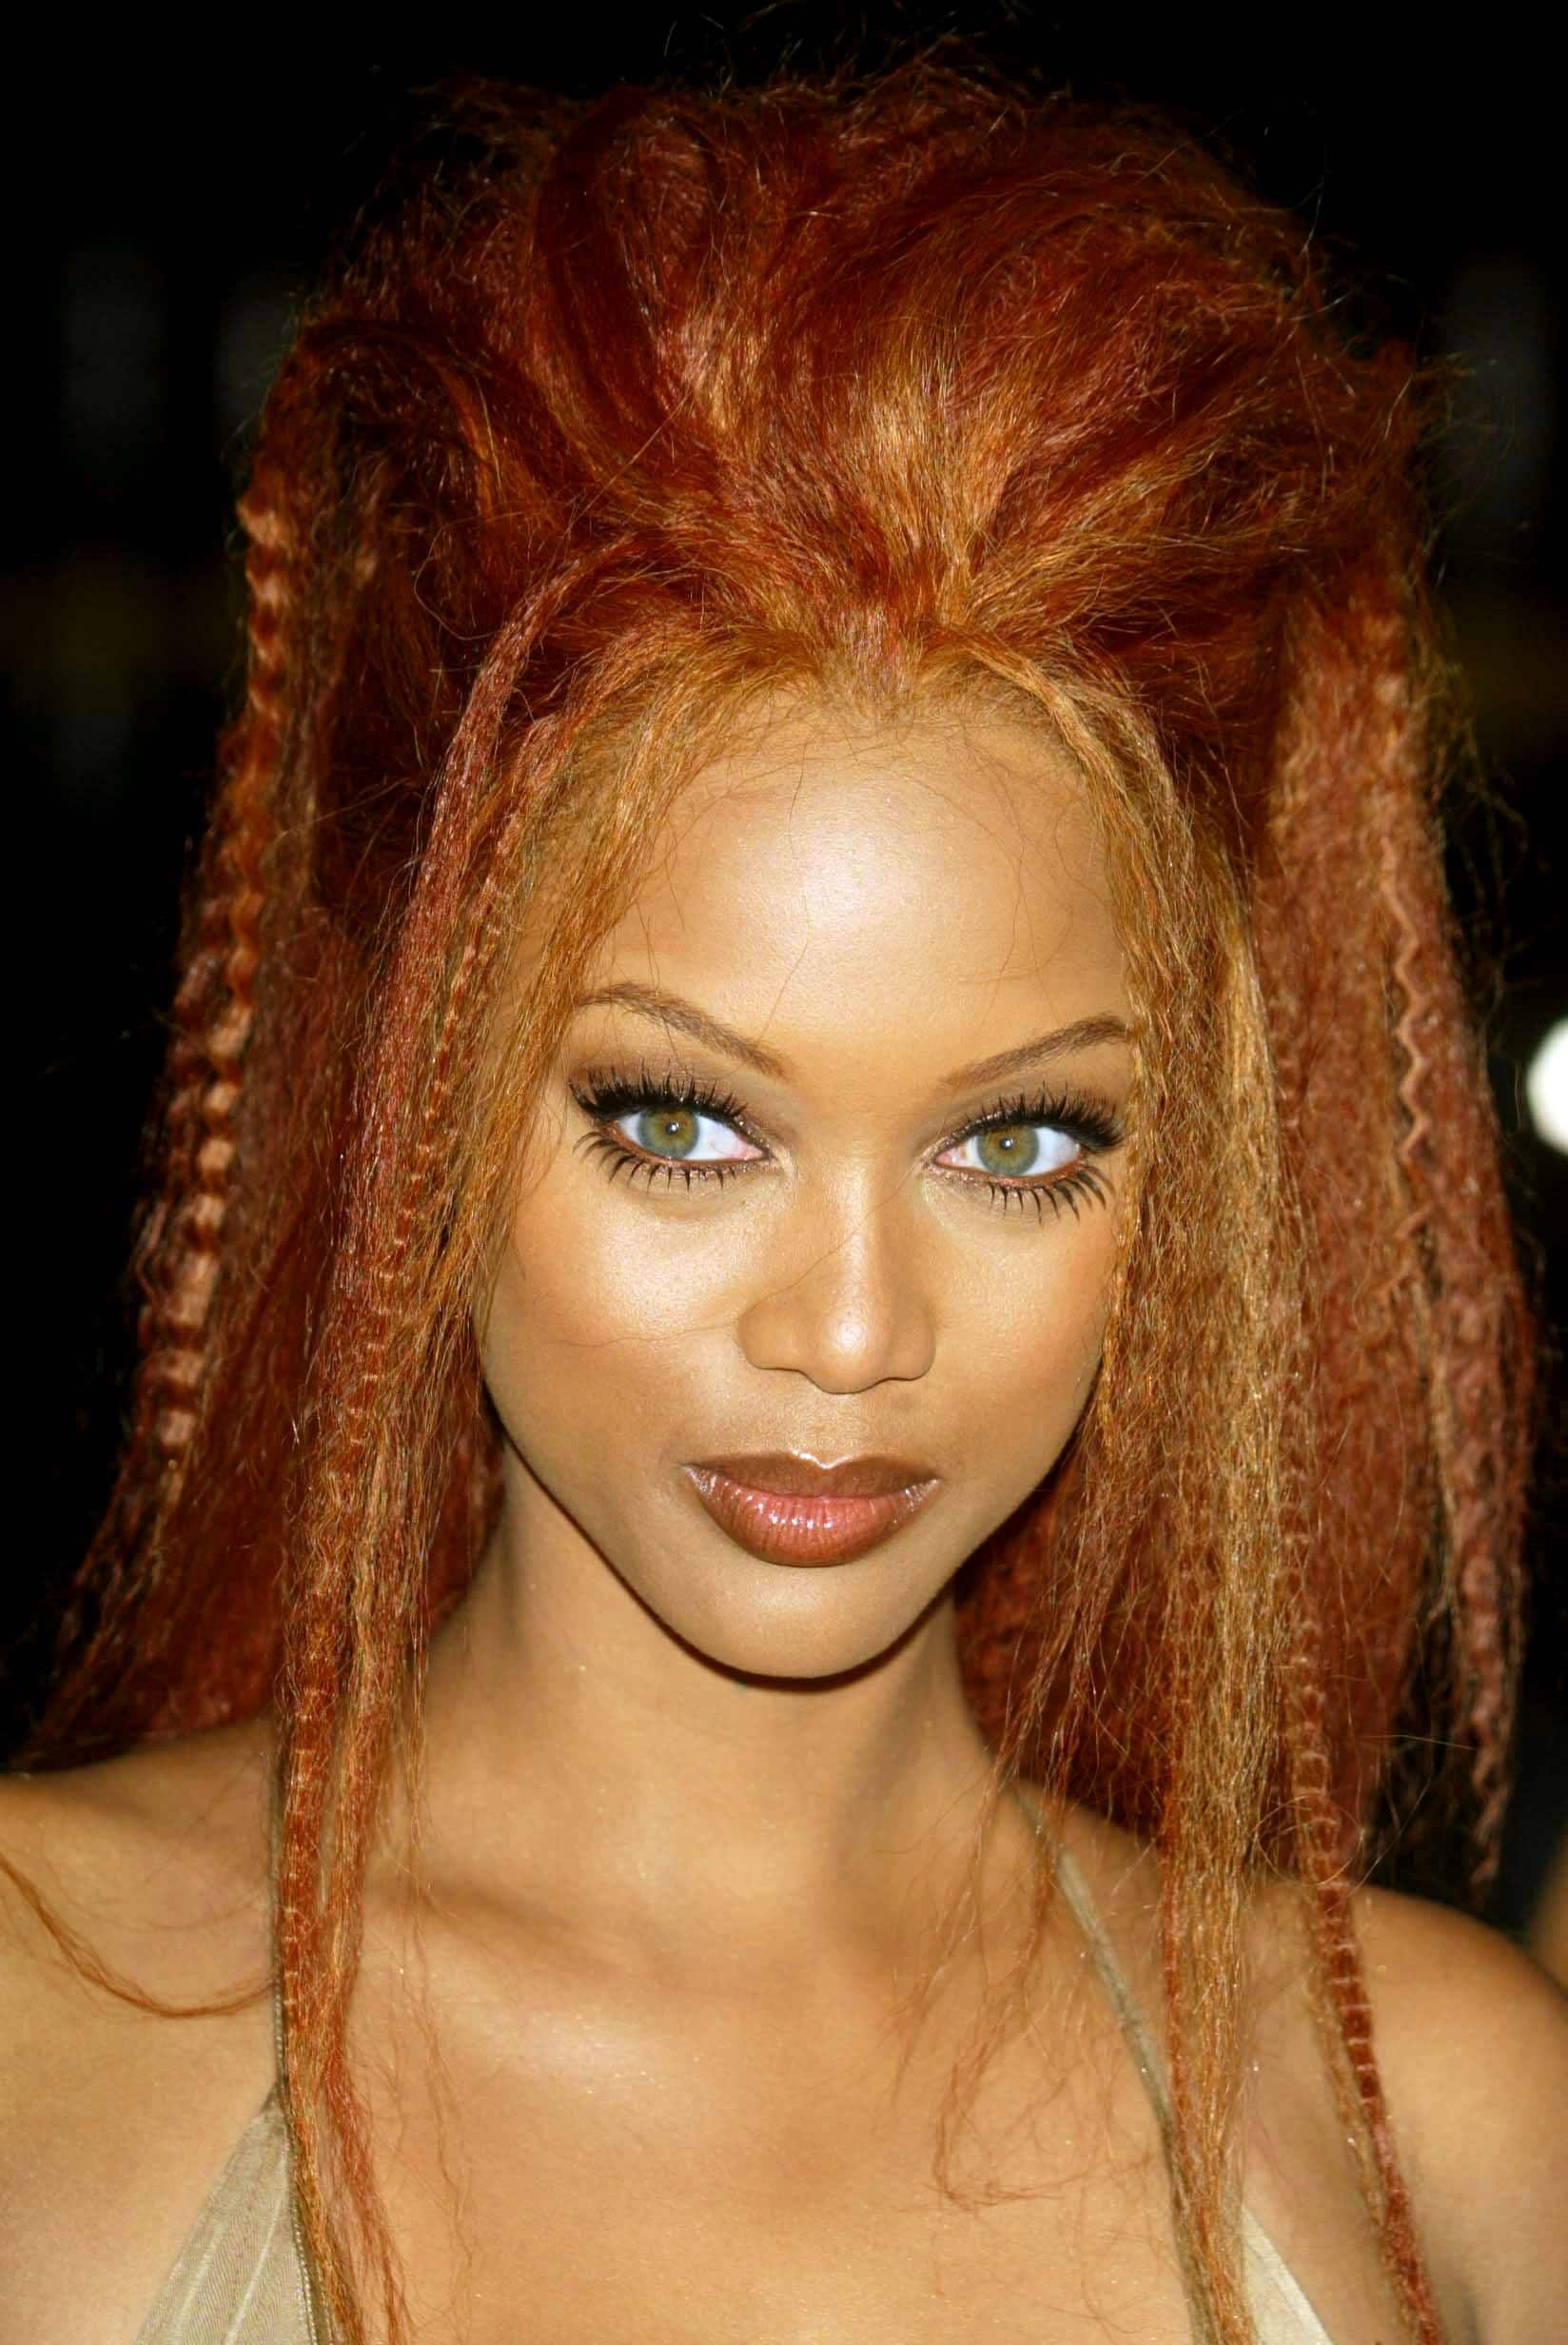 Crimped hair: Tyra Banks with copper red long crimped hair in updo ponytail.